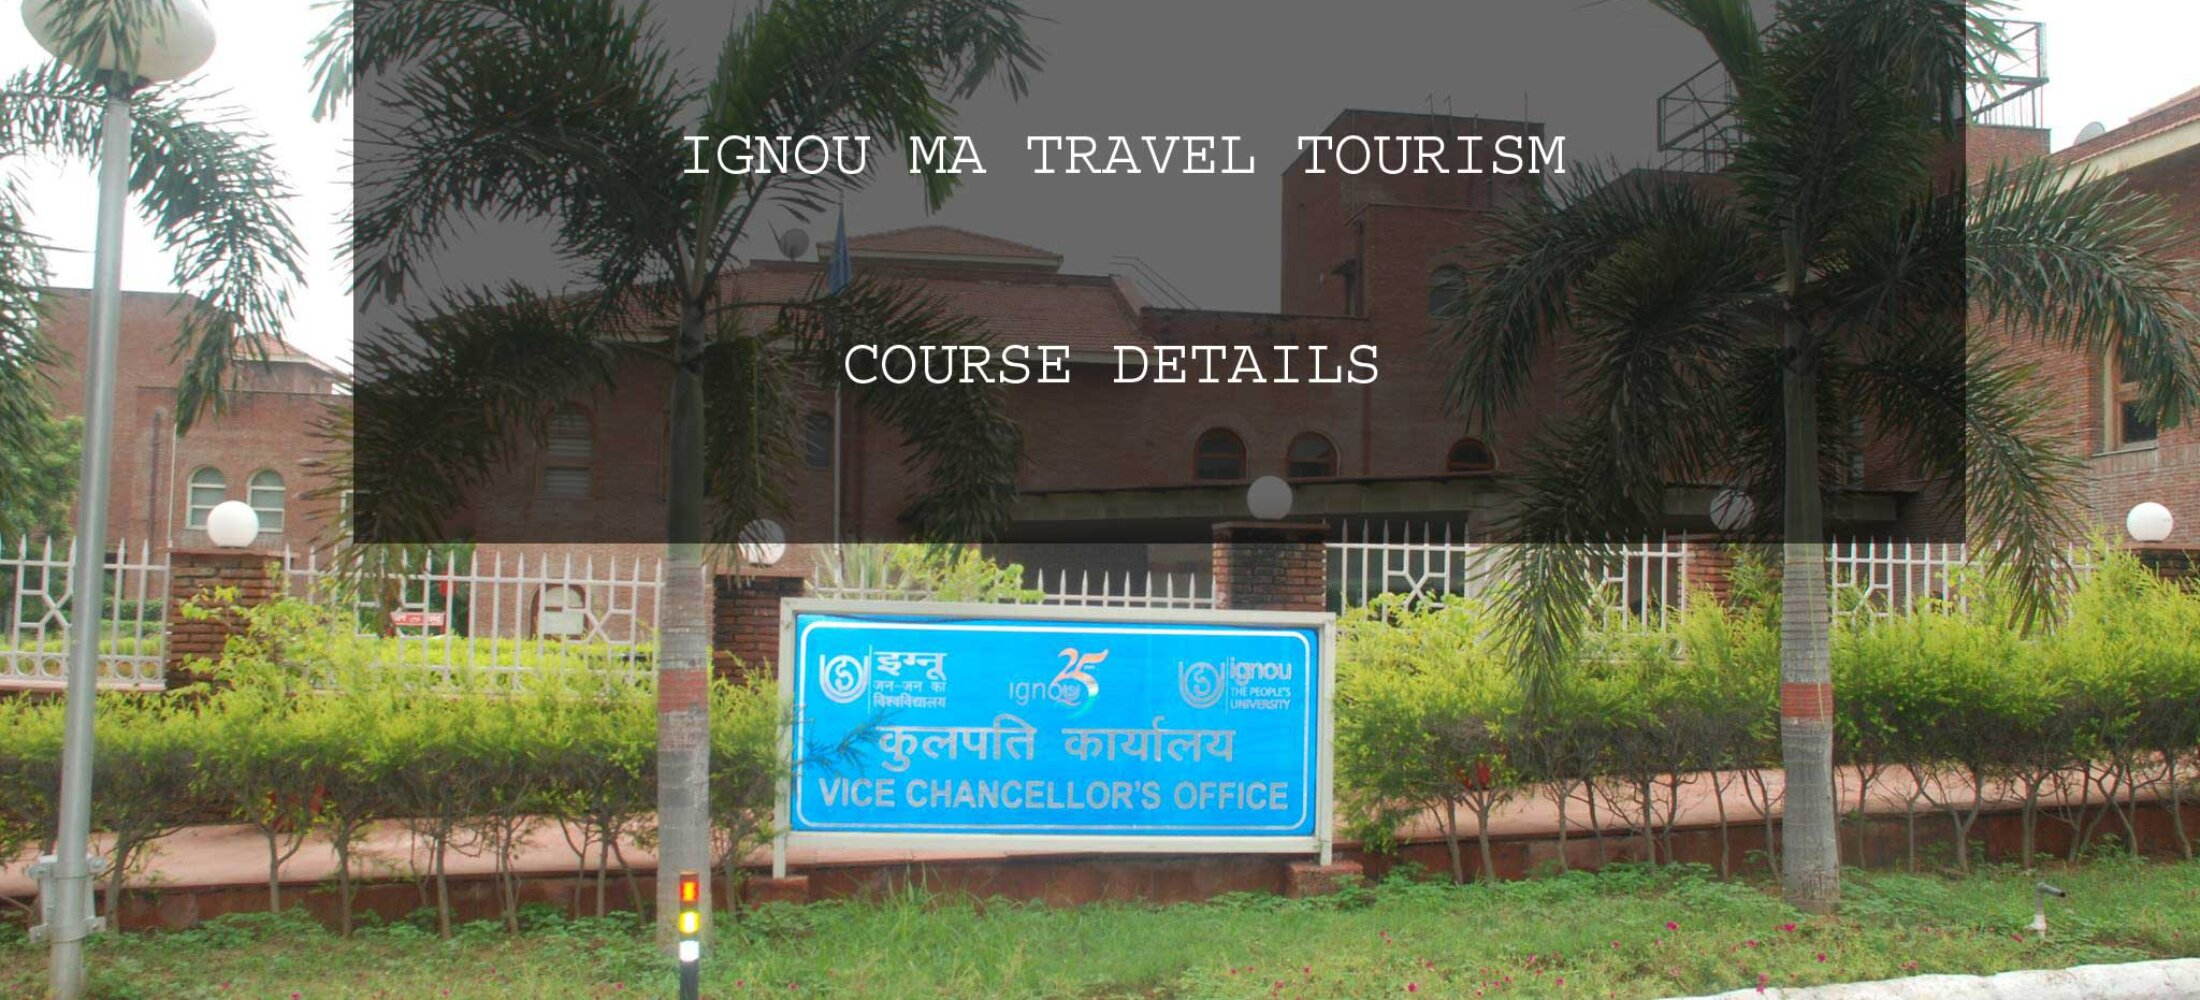 Ignou MA Travel Tourism Course Details